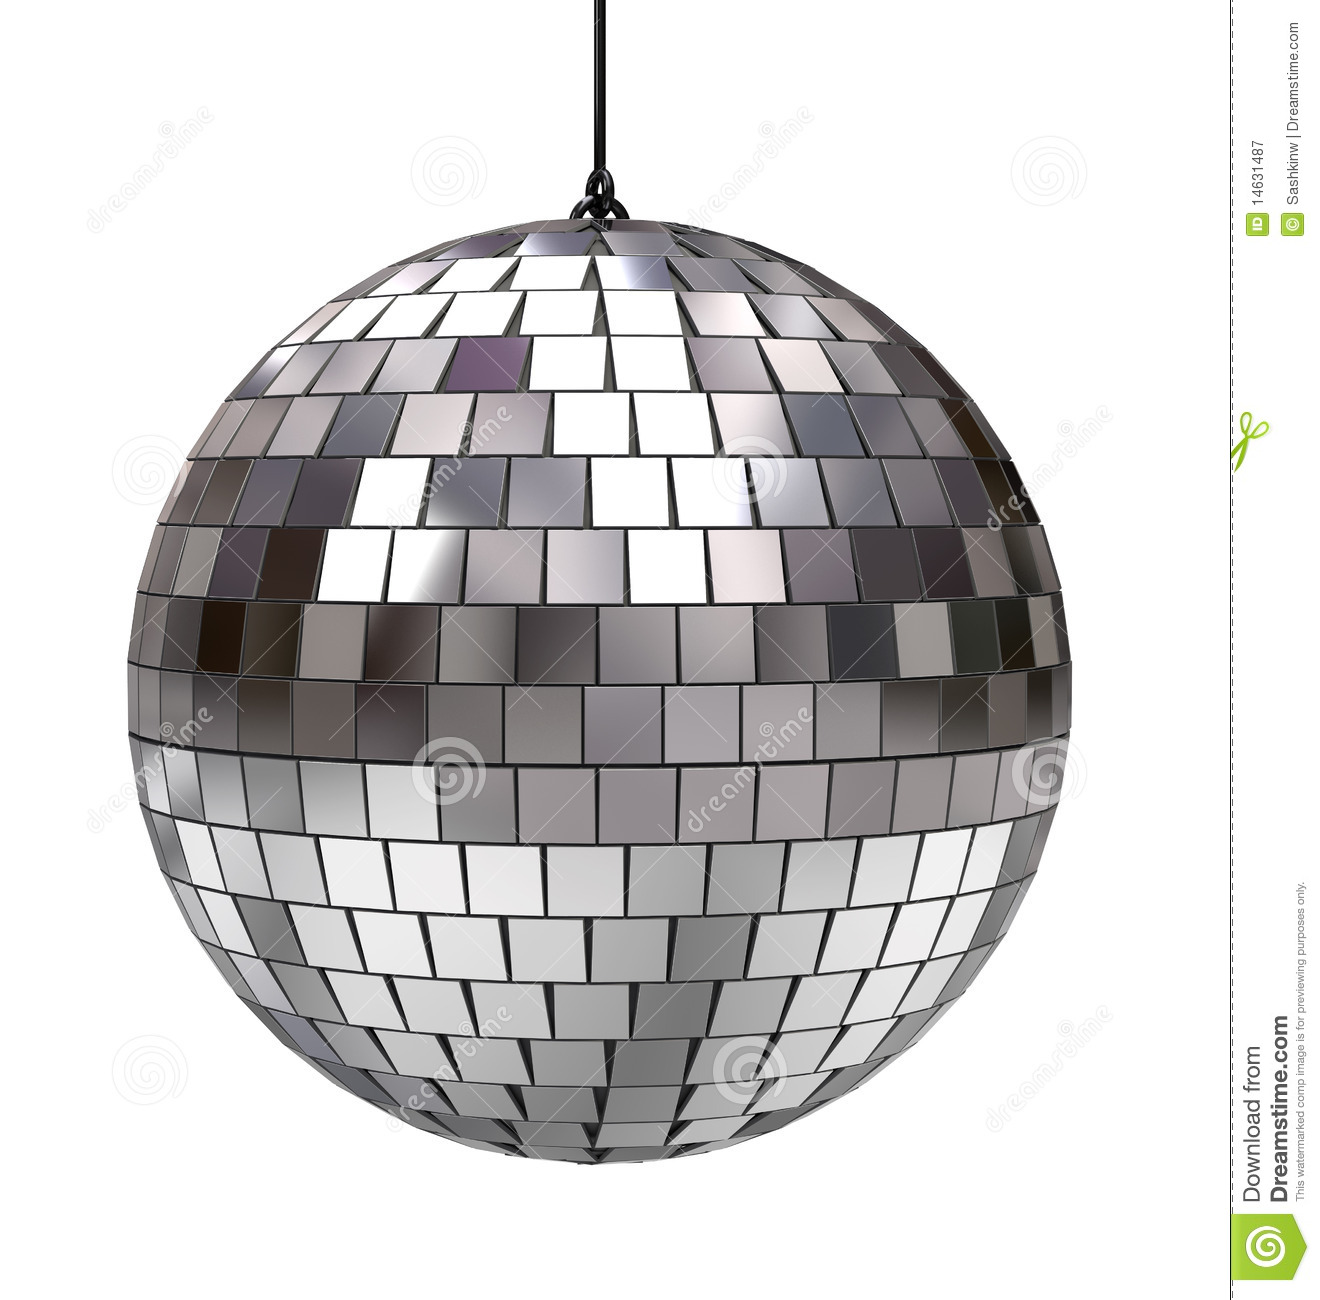 Disco Ball Royalty Free Stock Photography - Image: 14631487